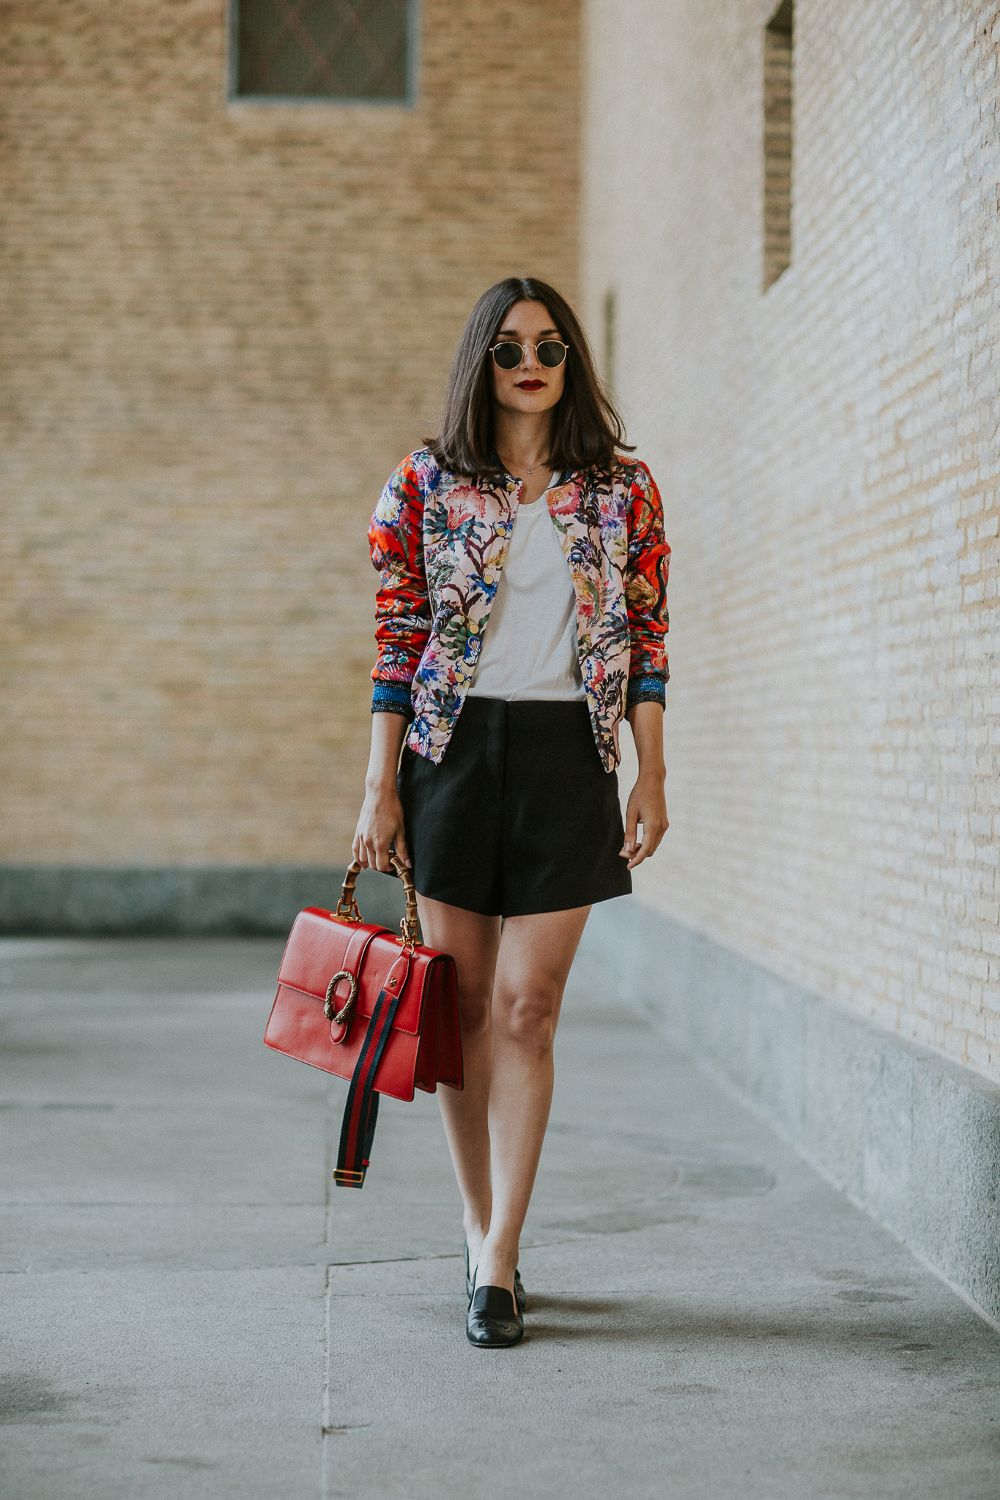 Anisa Sojka styles colorful floral rainbow H&M bomber with oriental details and glitter cuffs   Simple white t-shirt   Black a-line shorts   Gucci loafers with signature GG logo   Red Dionysus Gucci handbag with gold snake and bamboo / striped over the shoulder handle   Classic round Rayban sunglasses   Red lipstick   Straight shoulder length brunette hair   Fashion blogger street style shot in London by Mikael Miettinen & Mikaela Watsfeldt